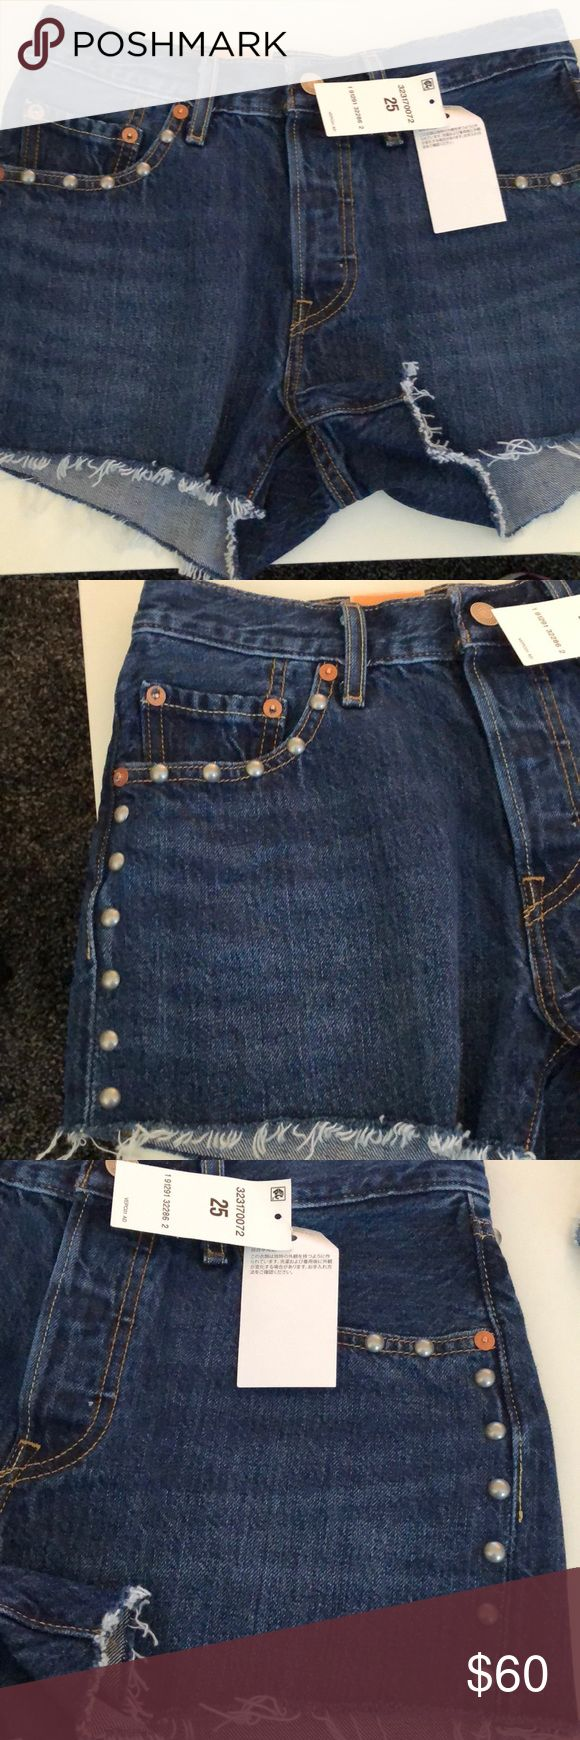 """=LEVI'S=STUDDED FRAYED FESTIVAL JEAN SHORTS 25 NWT NO IMPERFECTIONS SIZE 25 Grommet studs along side and pockets Adorable for summer  waist 13"""" rise 9"""" length 11""""  Festival fashion,short shorts, denim shorts, jean shorts,hippie,boho x Levi's Shorts Jean Shorts"""